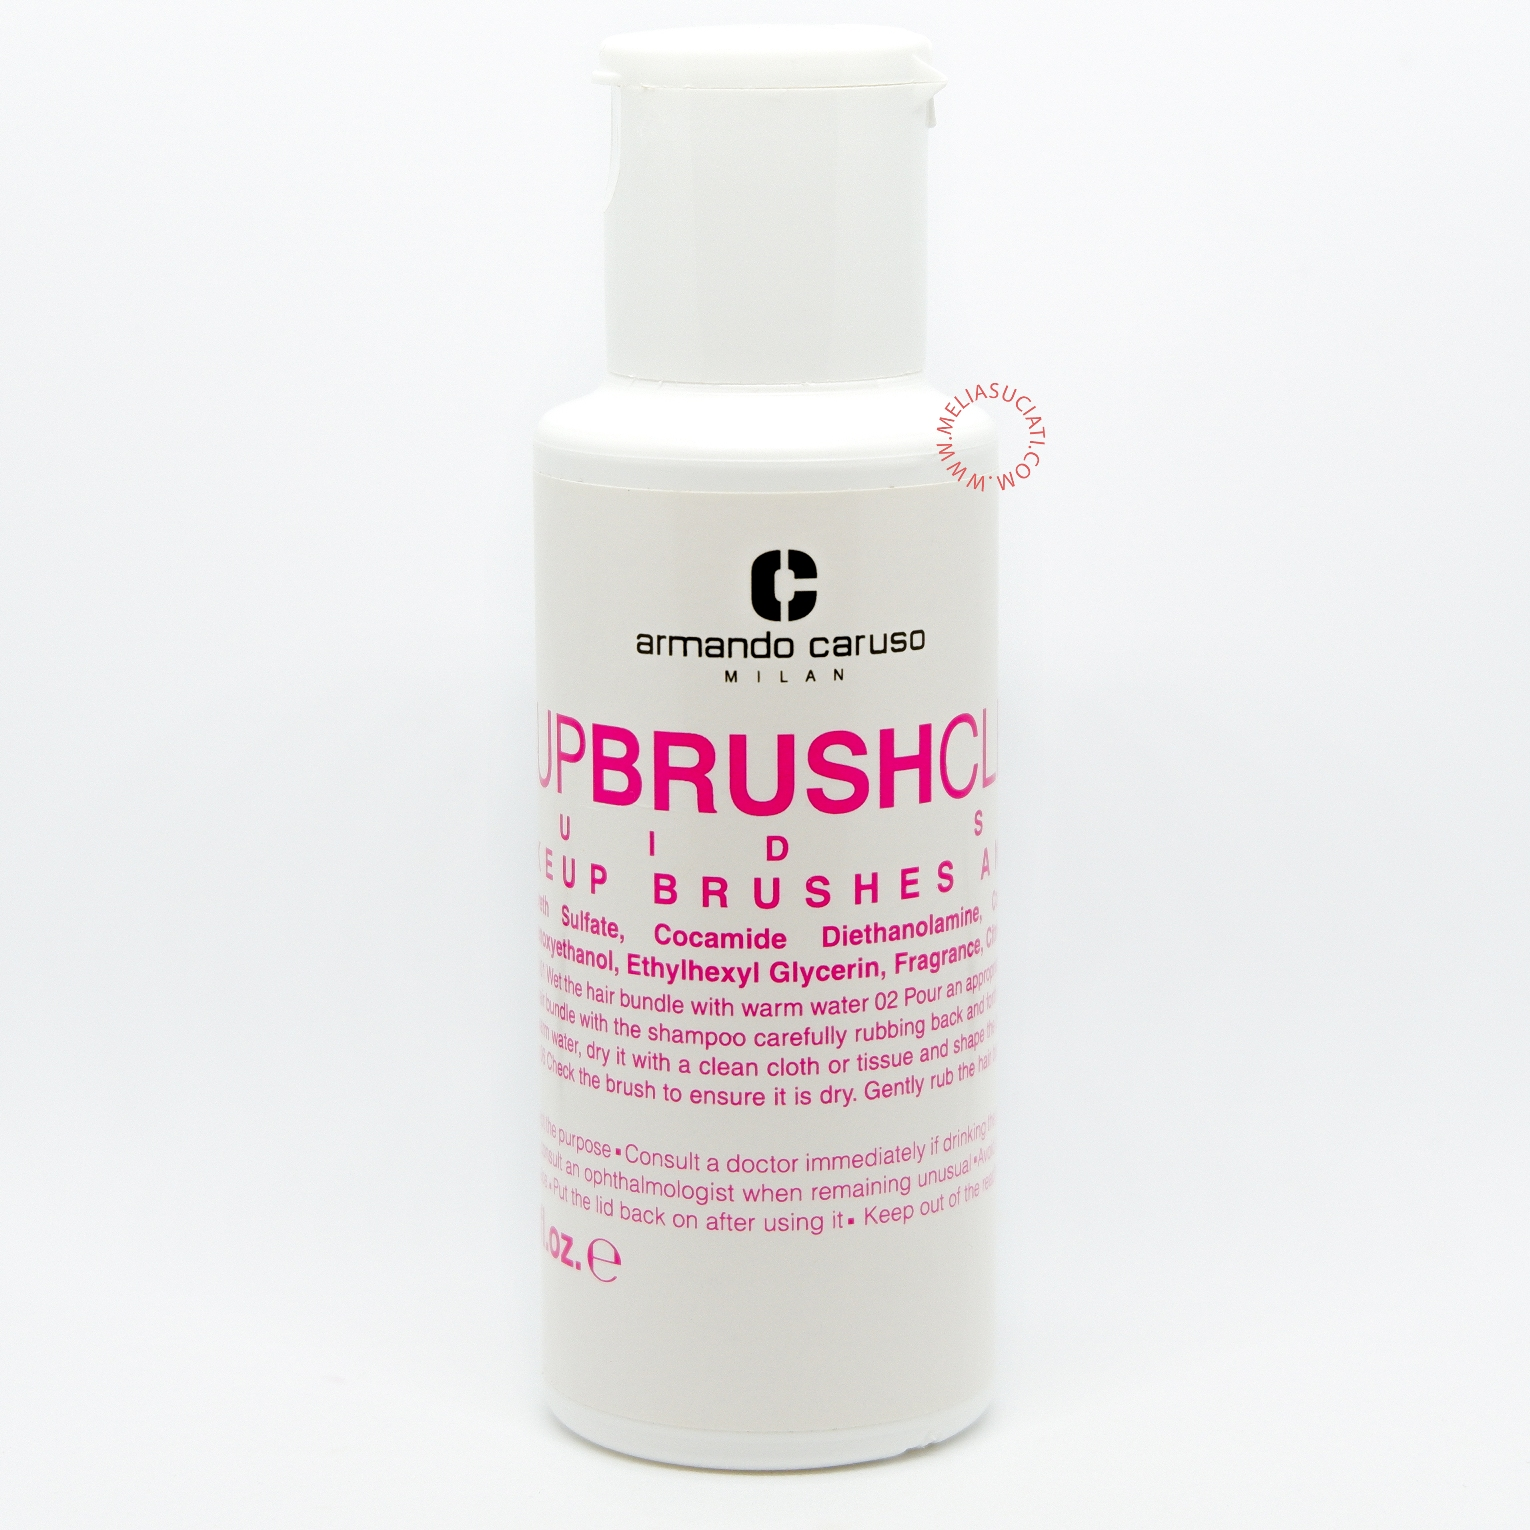 MAKEUP BRUSH CLEANER LIQUID SOAP BY ARMANDO CARUSO